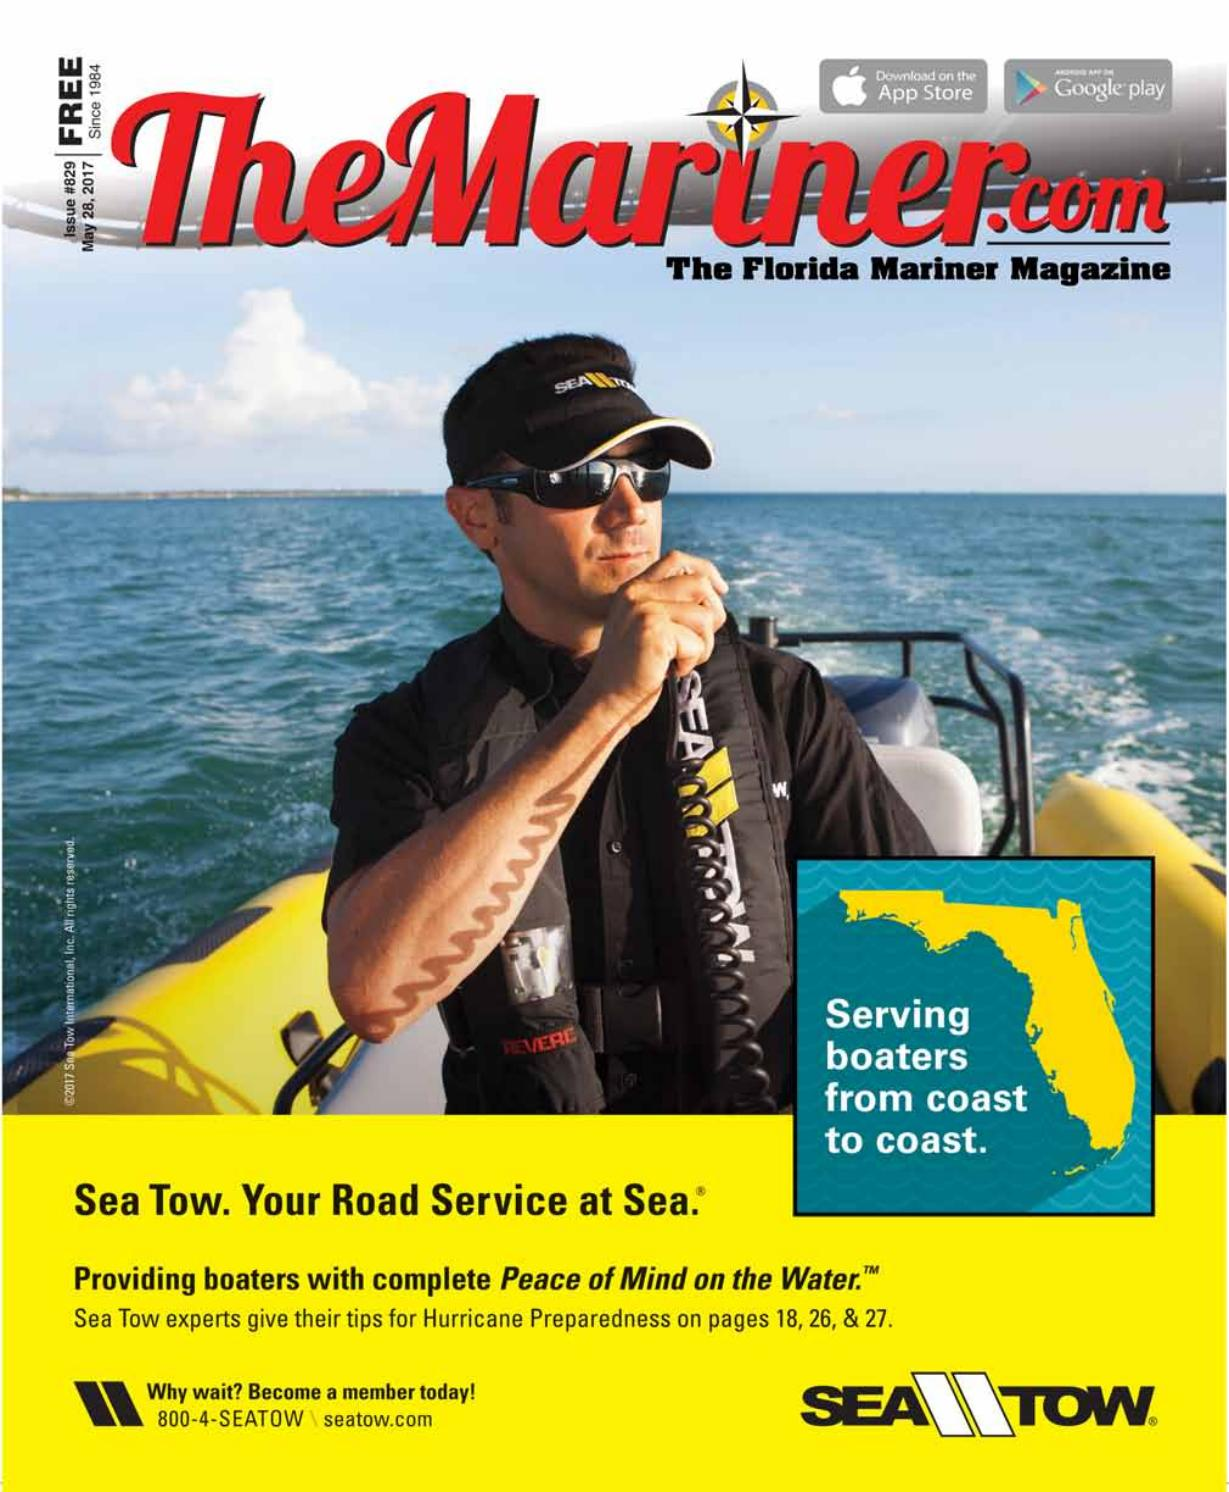 9c2583ee4c3b Issue 829 by The Florida Mariner - issuu